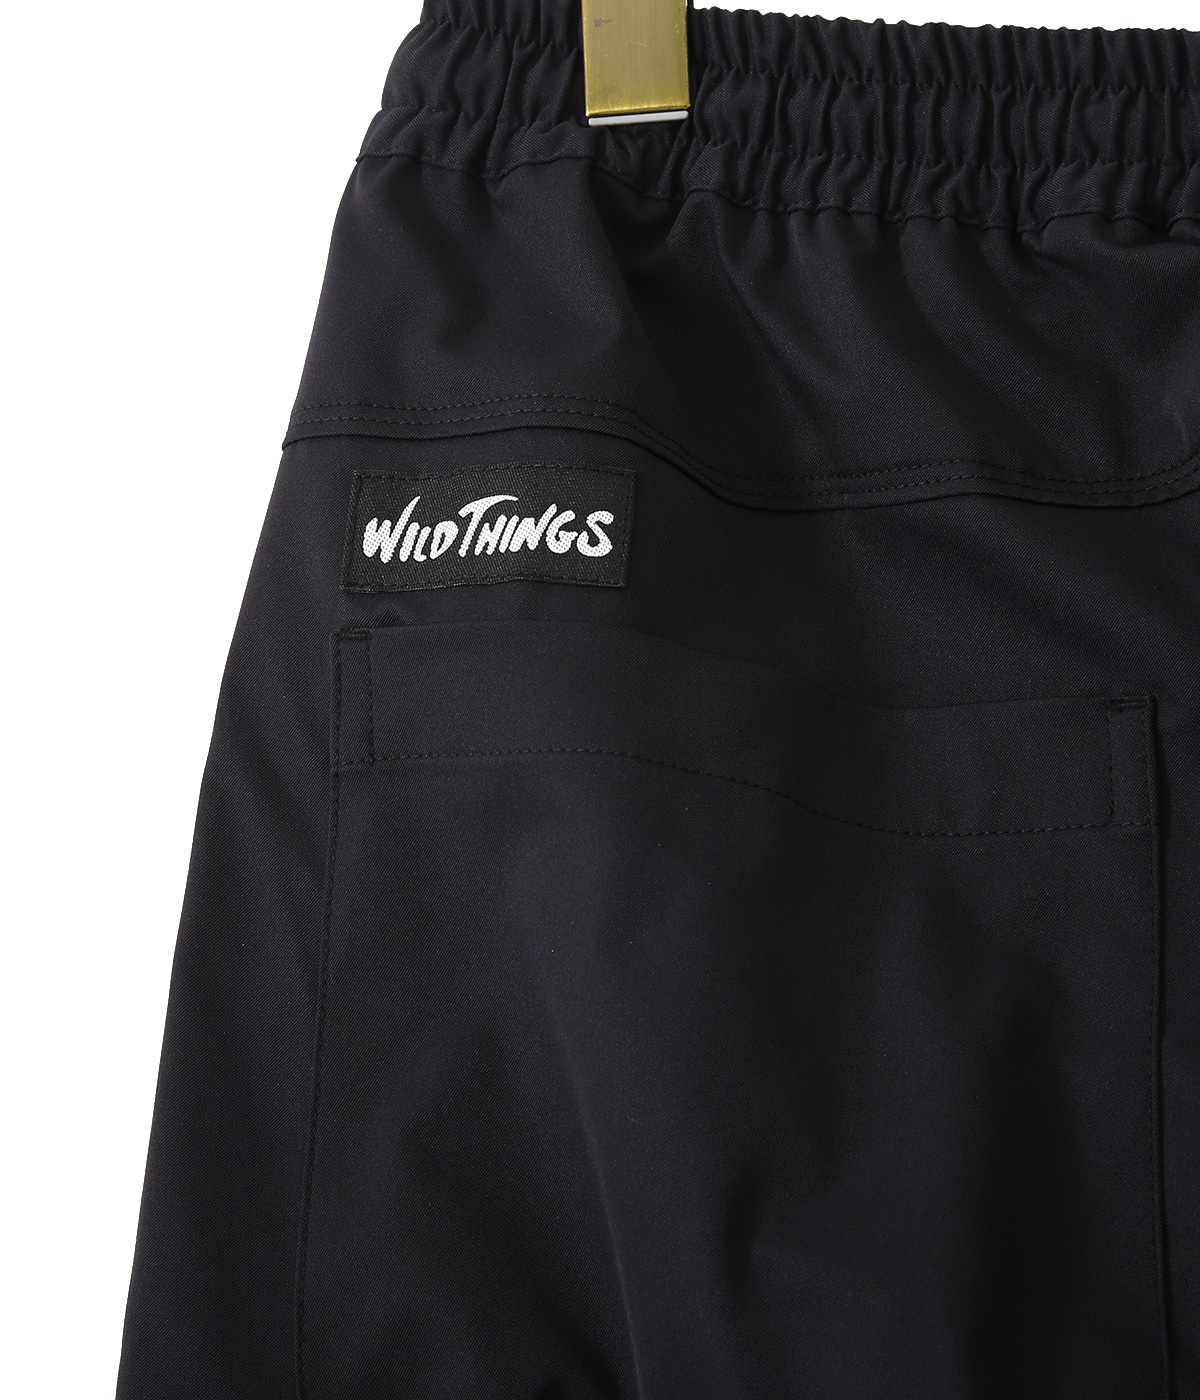 "Wild Jockey Pants by Wild Things""R"""